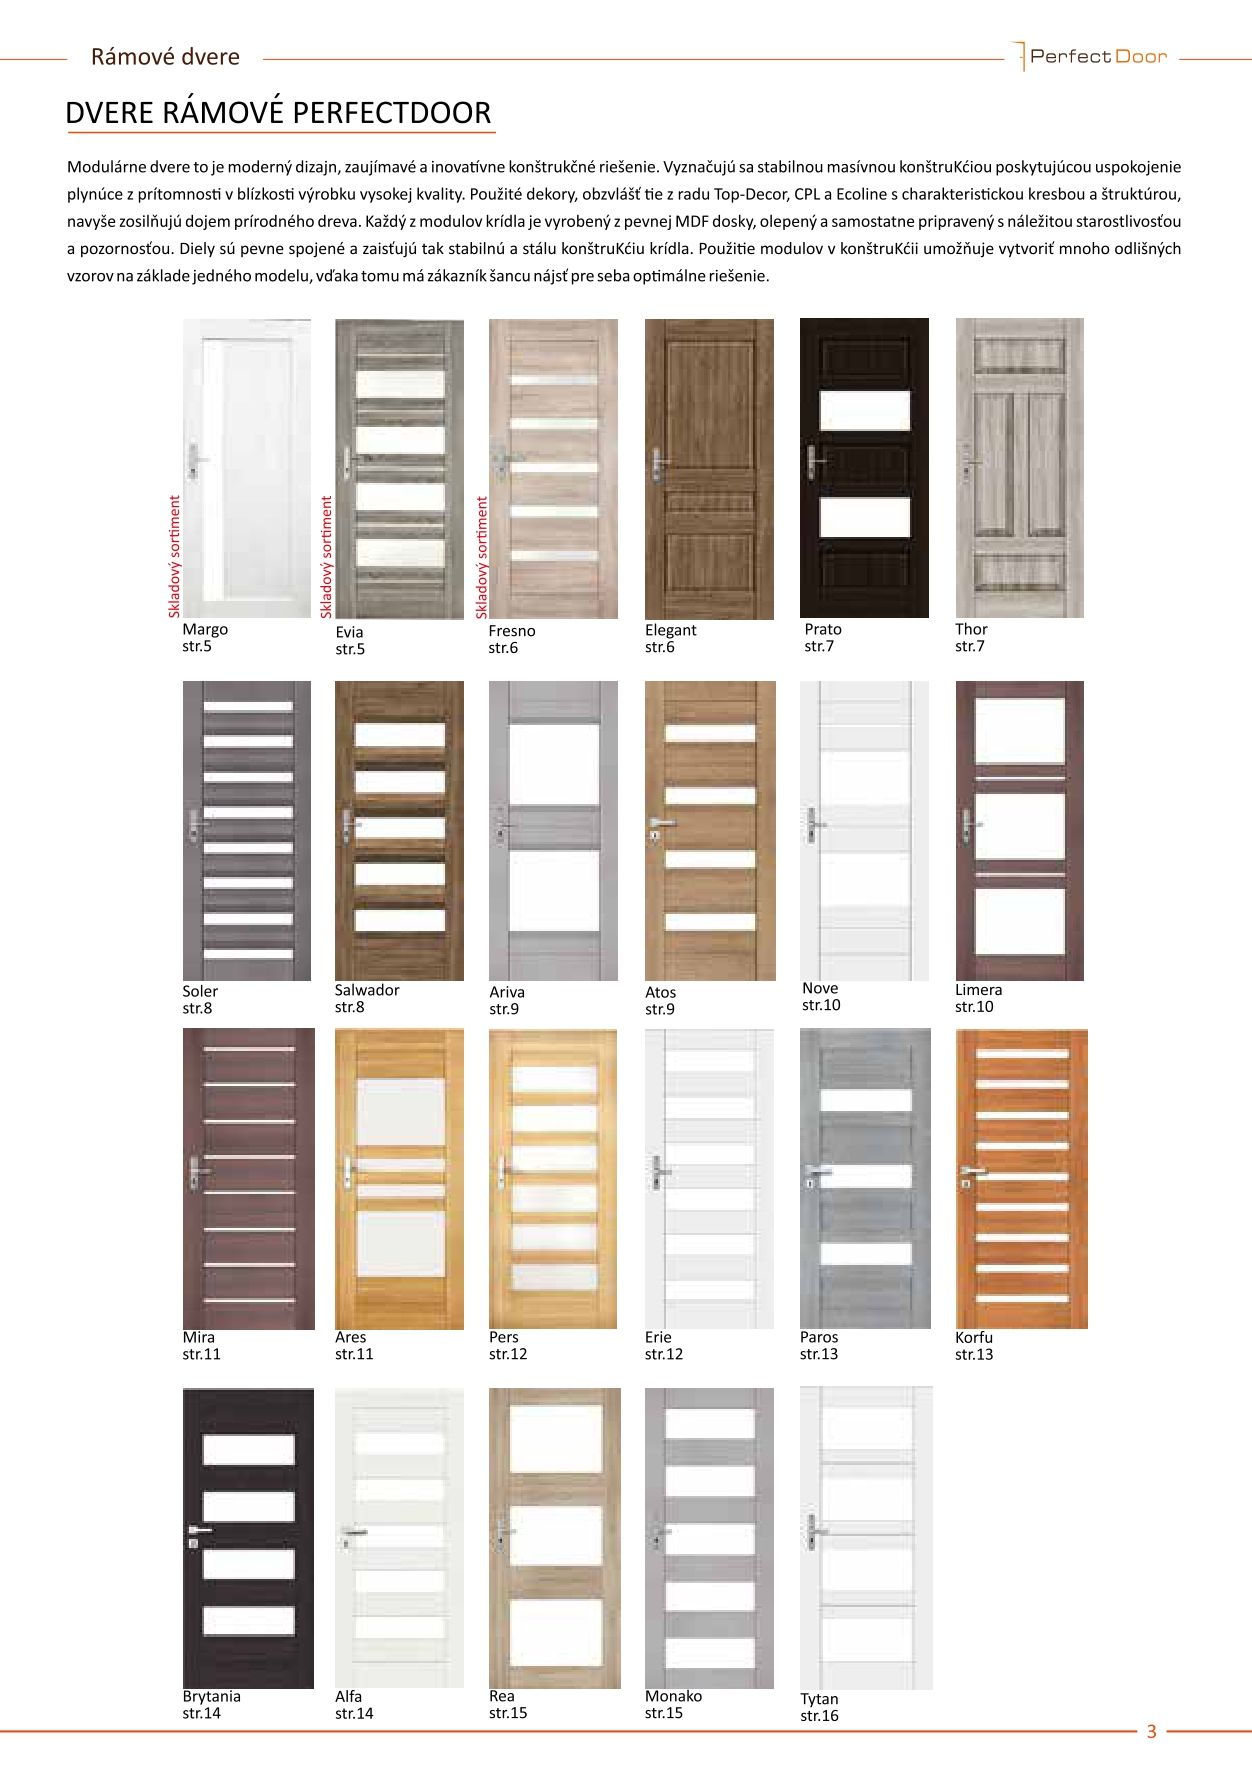 Perfectdoor katalog  1 2019 pages-to-jpg-0003